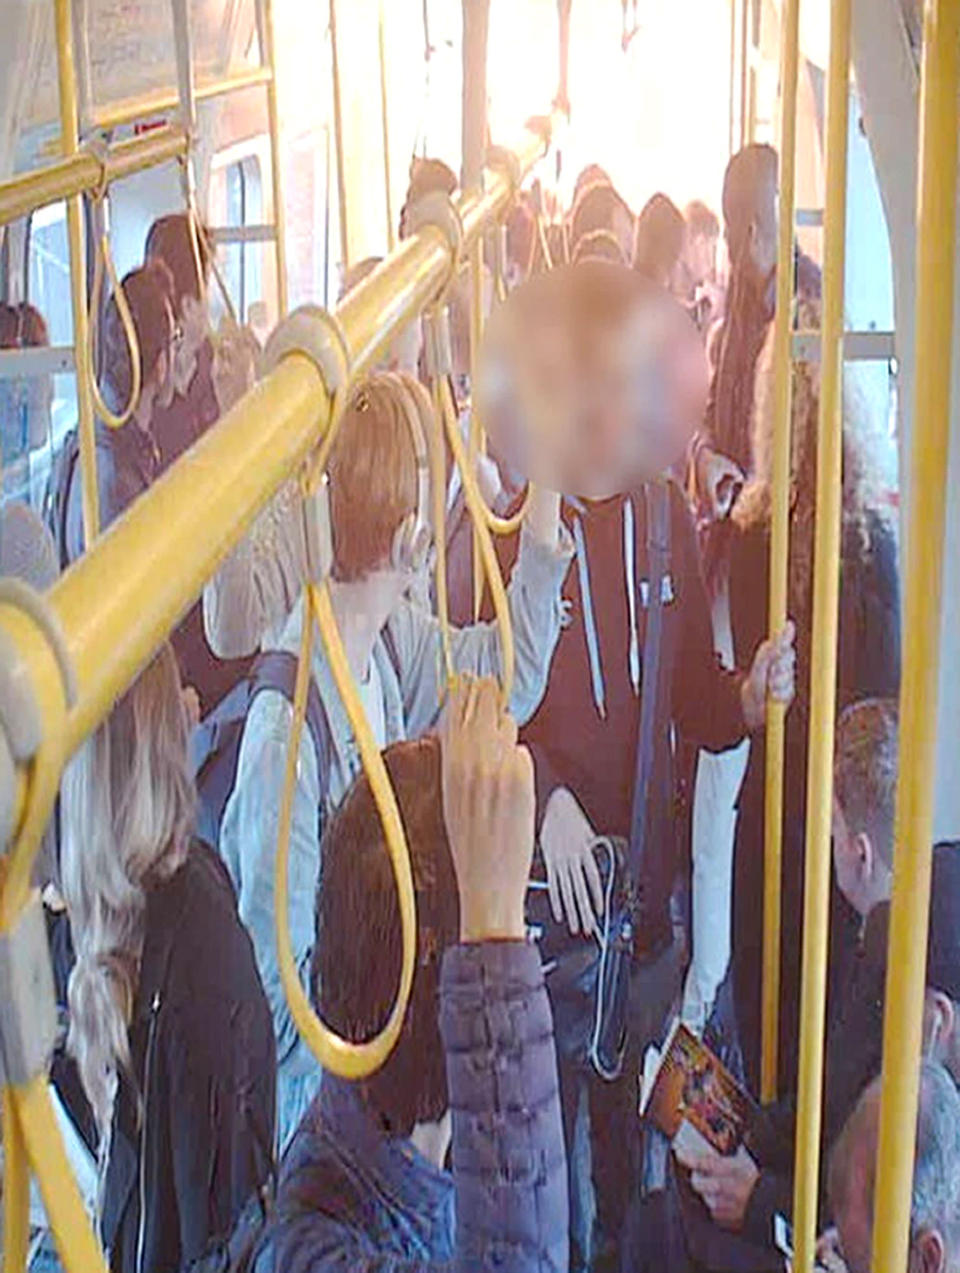 <em>Terror – passengers were faced with horrific scenes as they tried to flee the train</em>